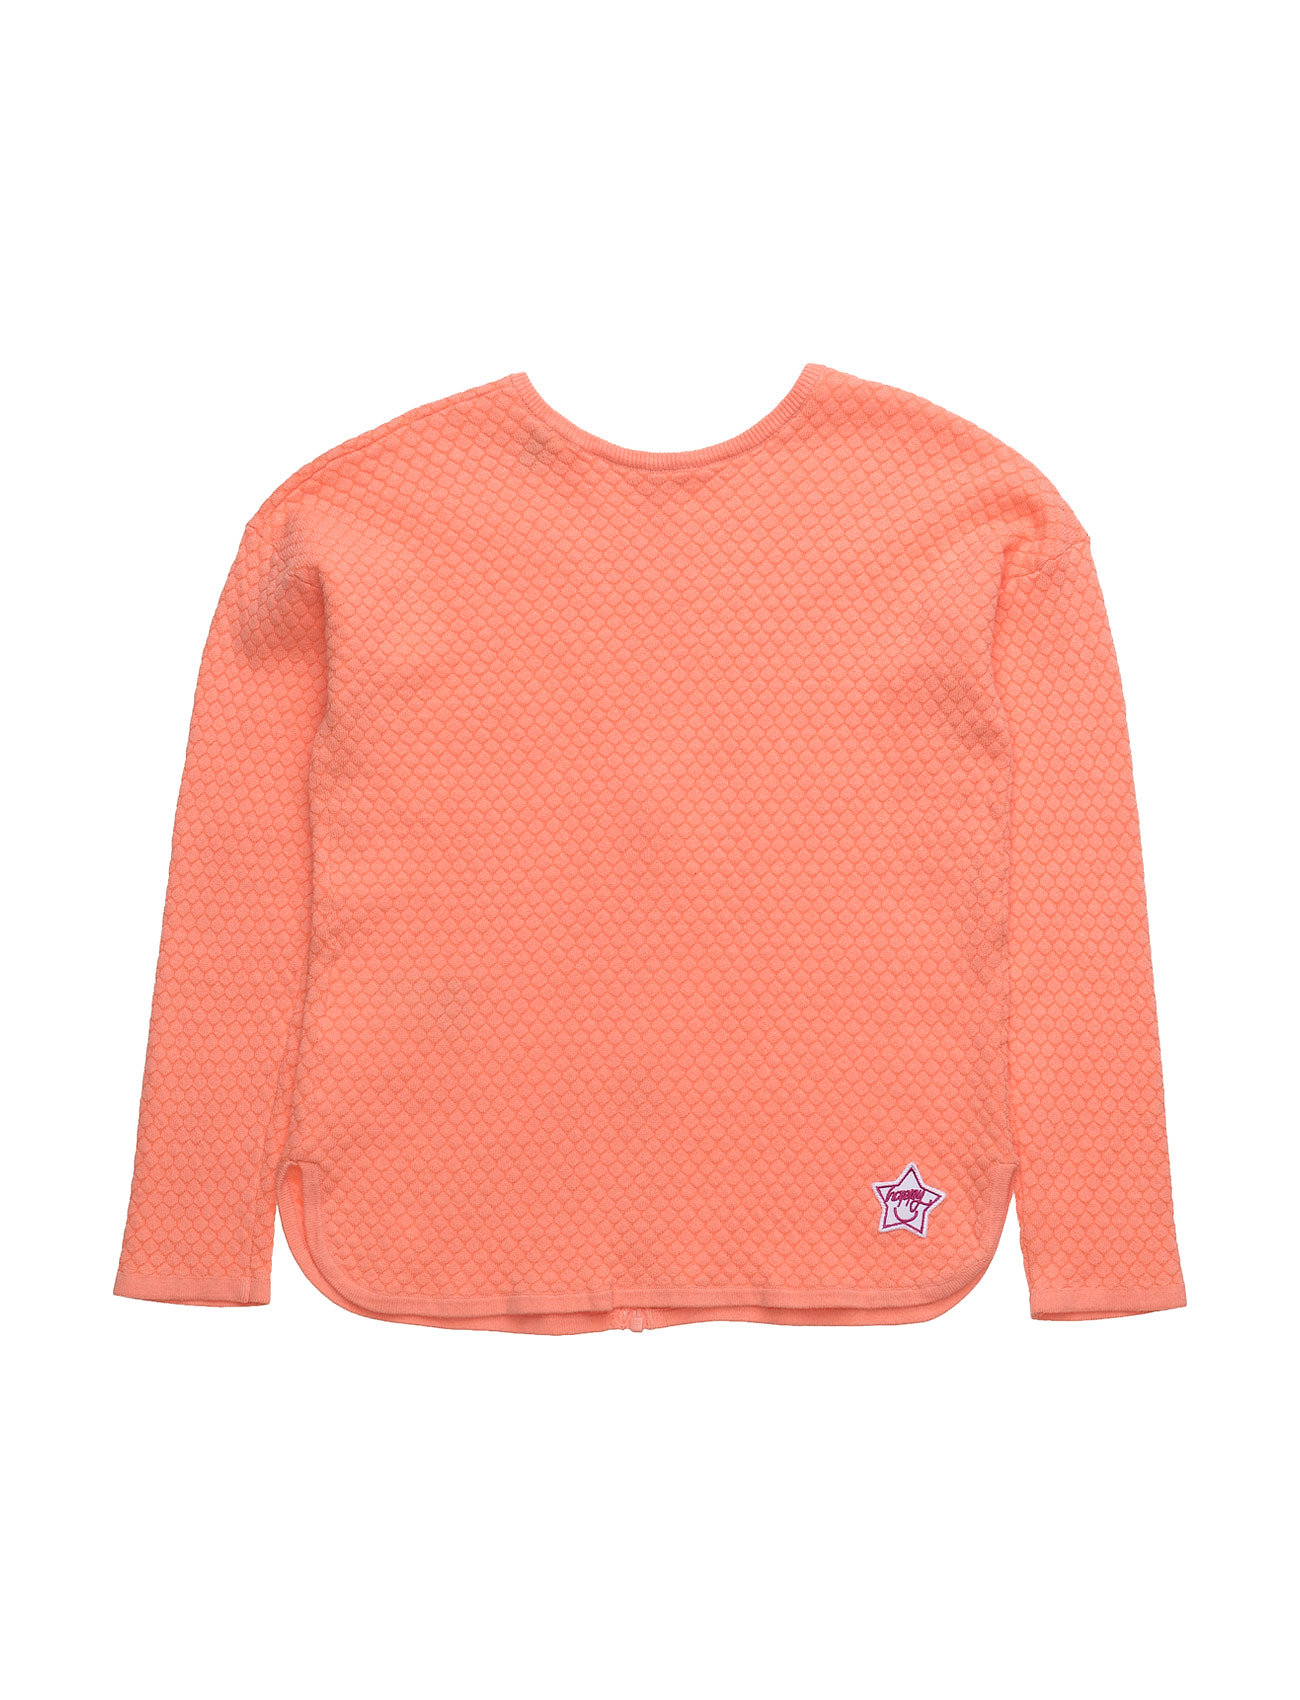 L/S Sweater United Colors of Benetton Pullovers til Piger i